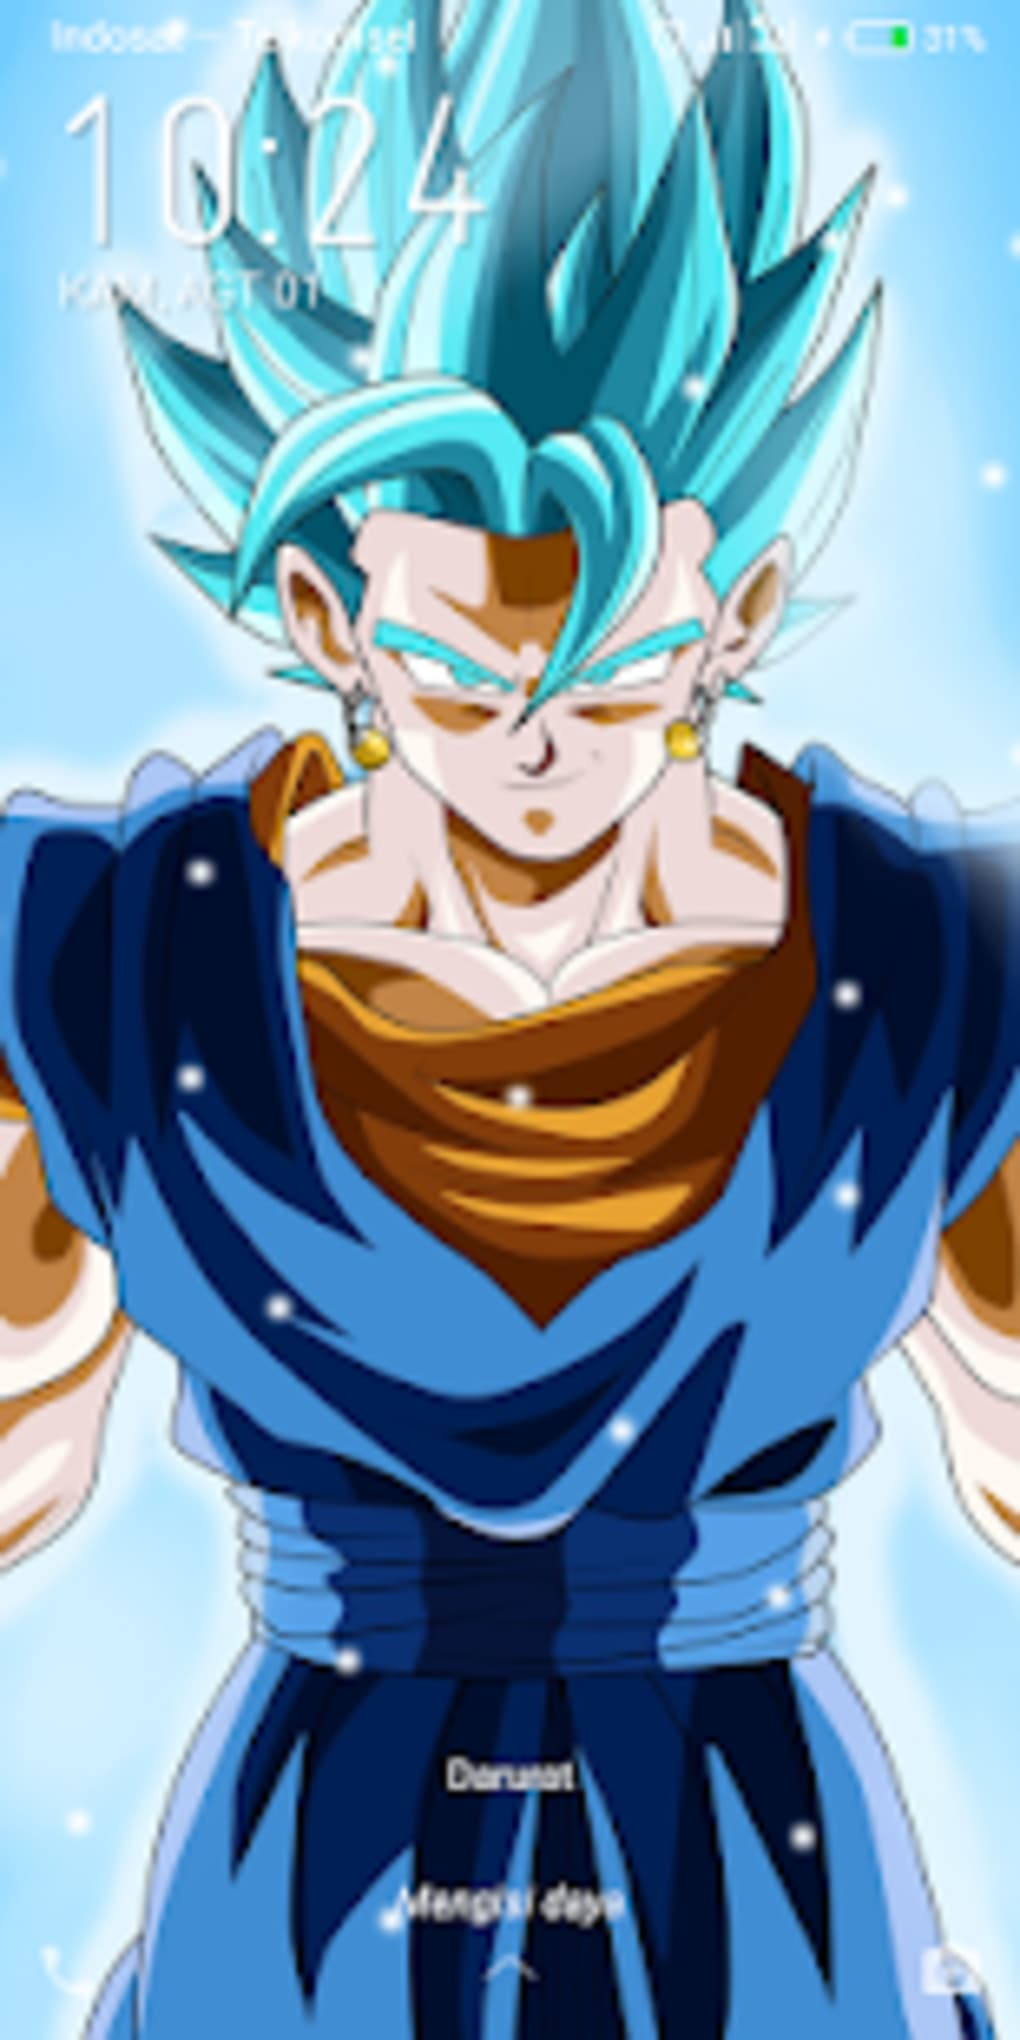 Dragon Ball Super Live Wallpaper For Android Wall Giftwatches Co